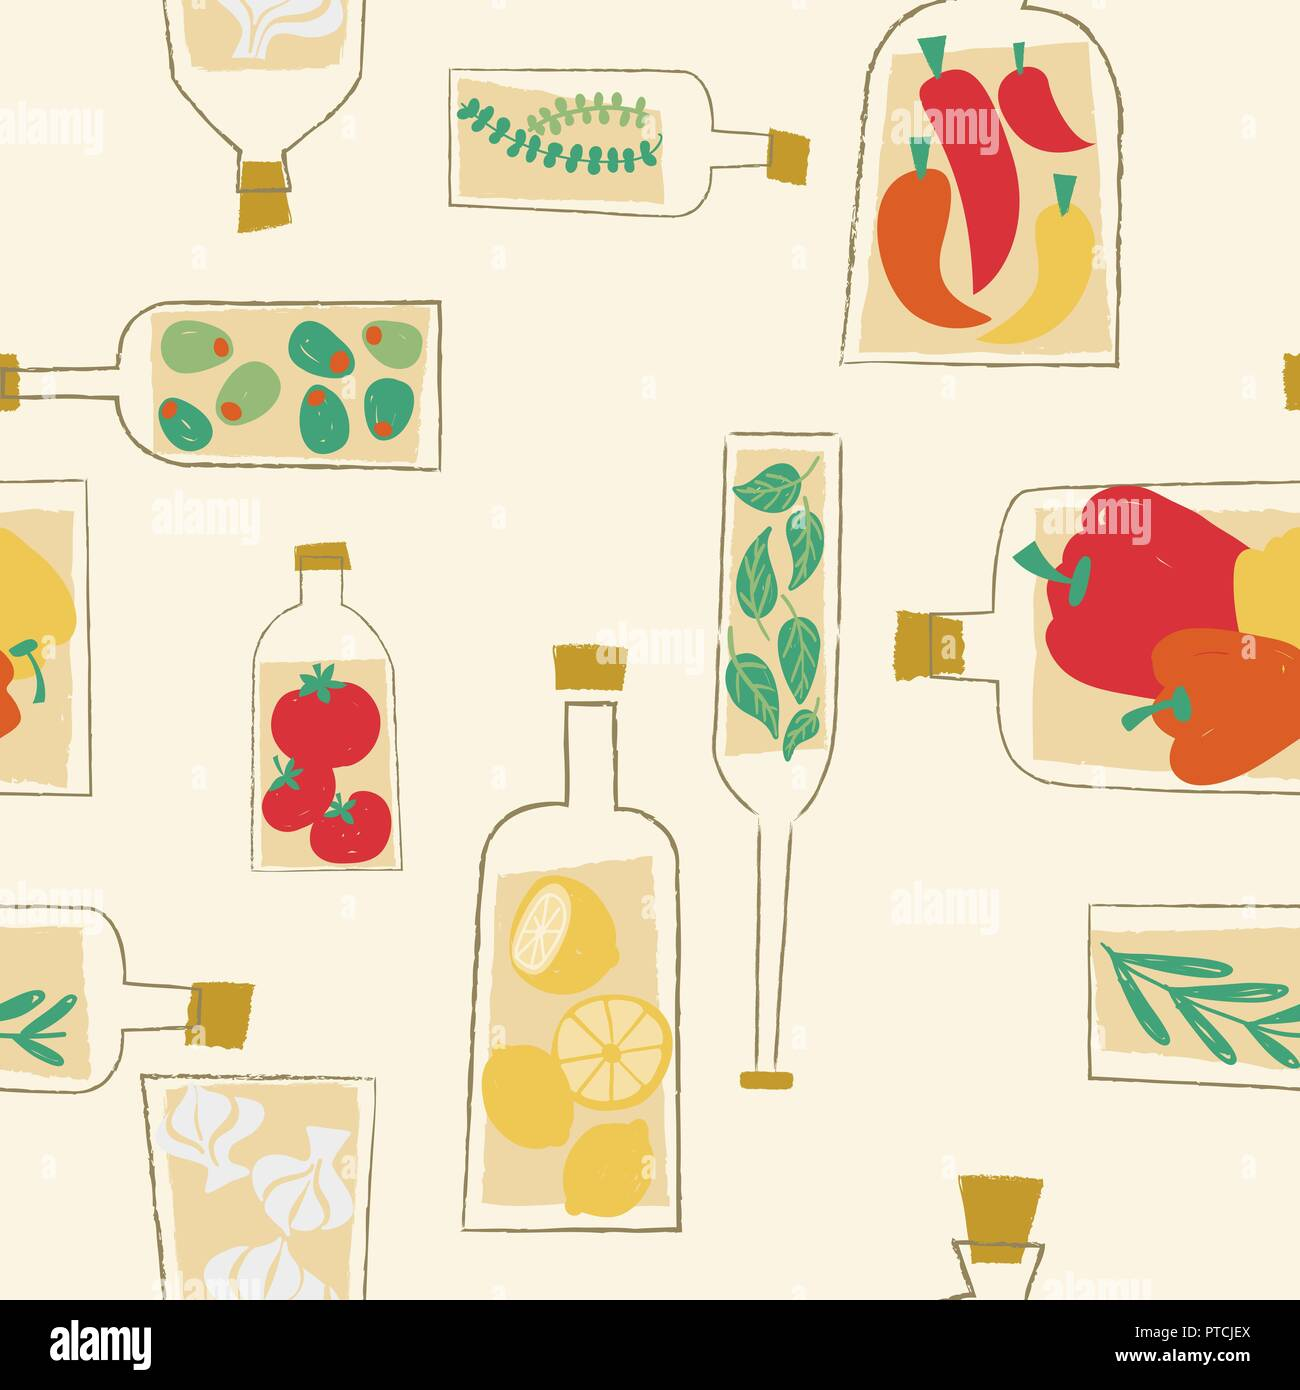 Vector decorative kitchen bottles seamless pattern background. Perfect for crafting projects, scrapbooking or fabrics. - Stock Vector